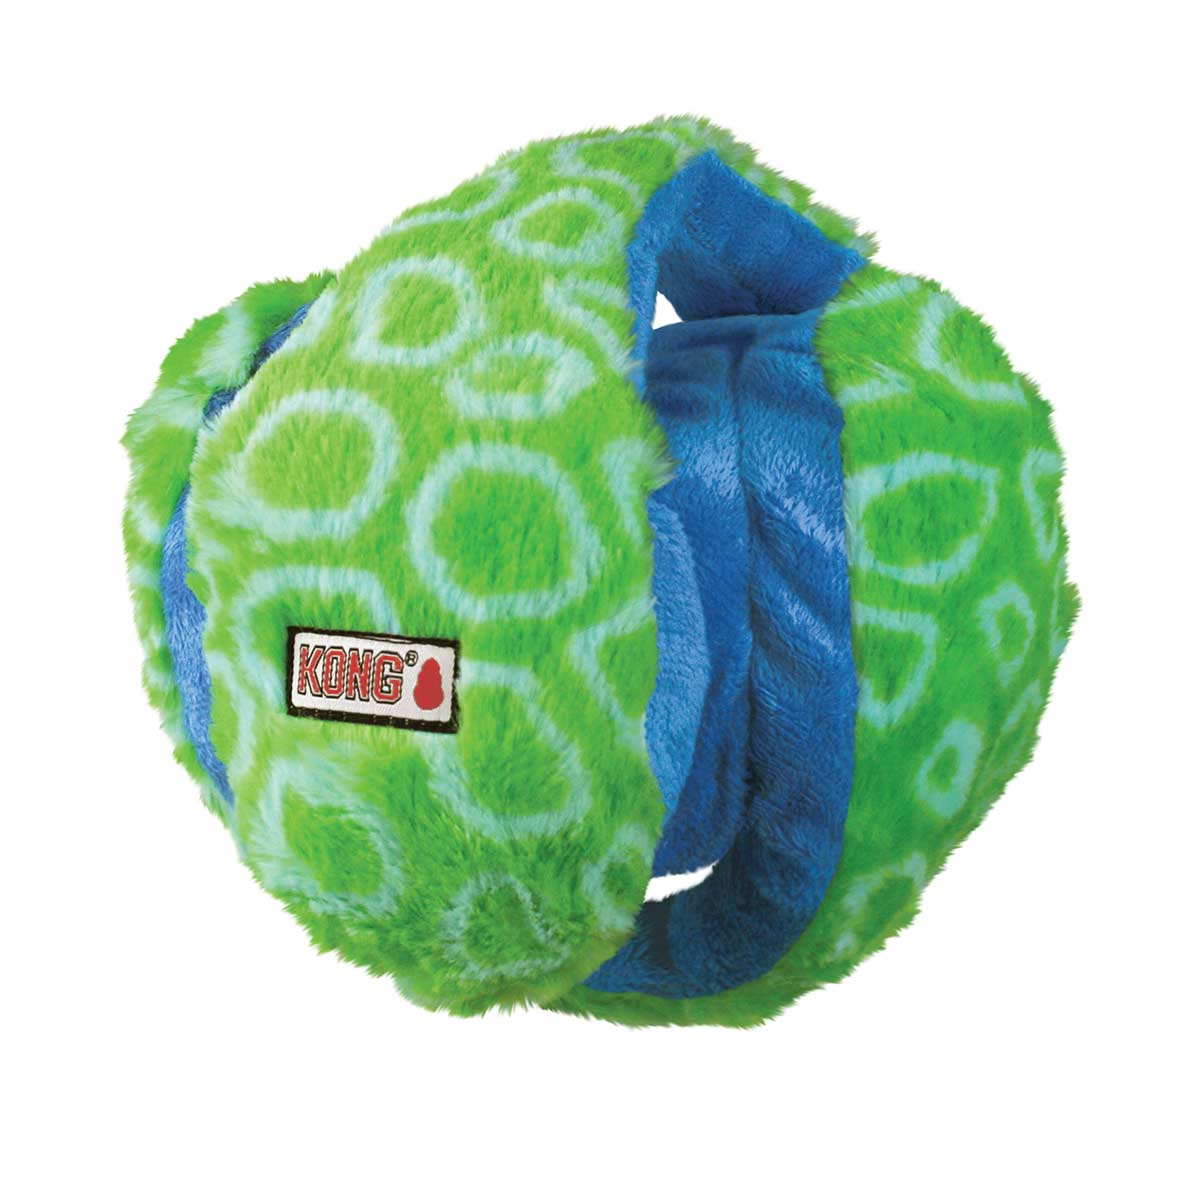 Medium KONG Funzler Six Squeaker Toy Green & Blue -